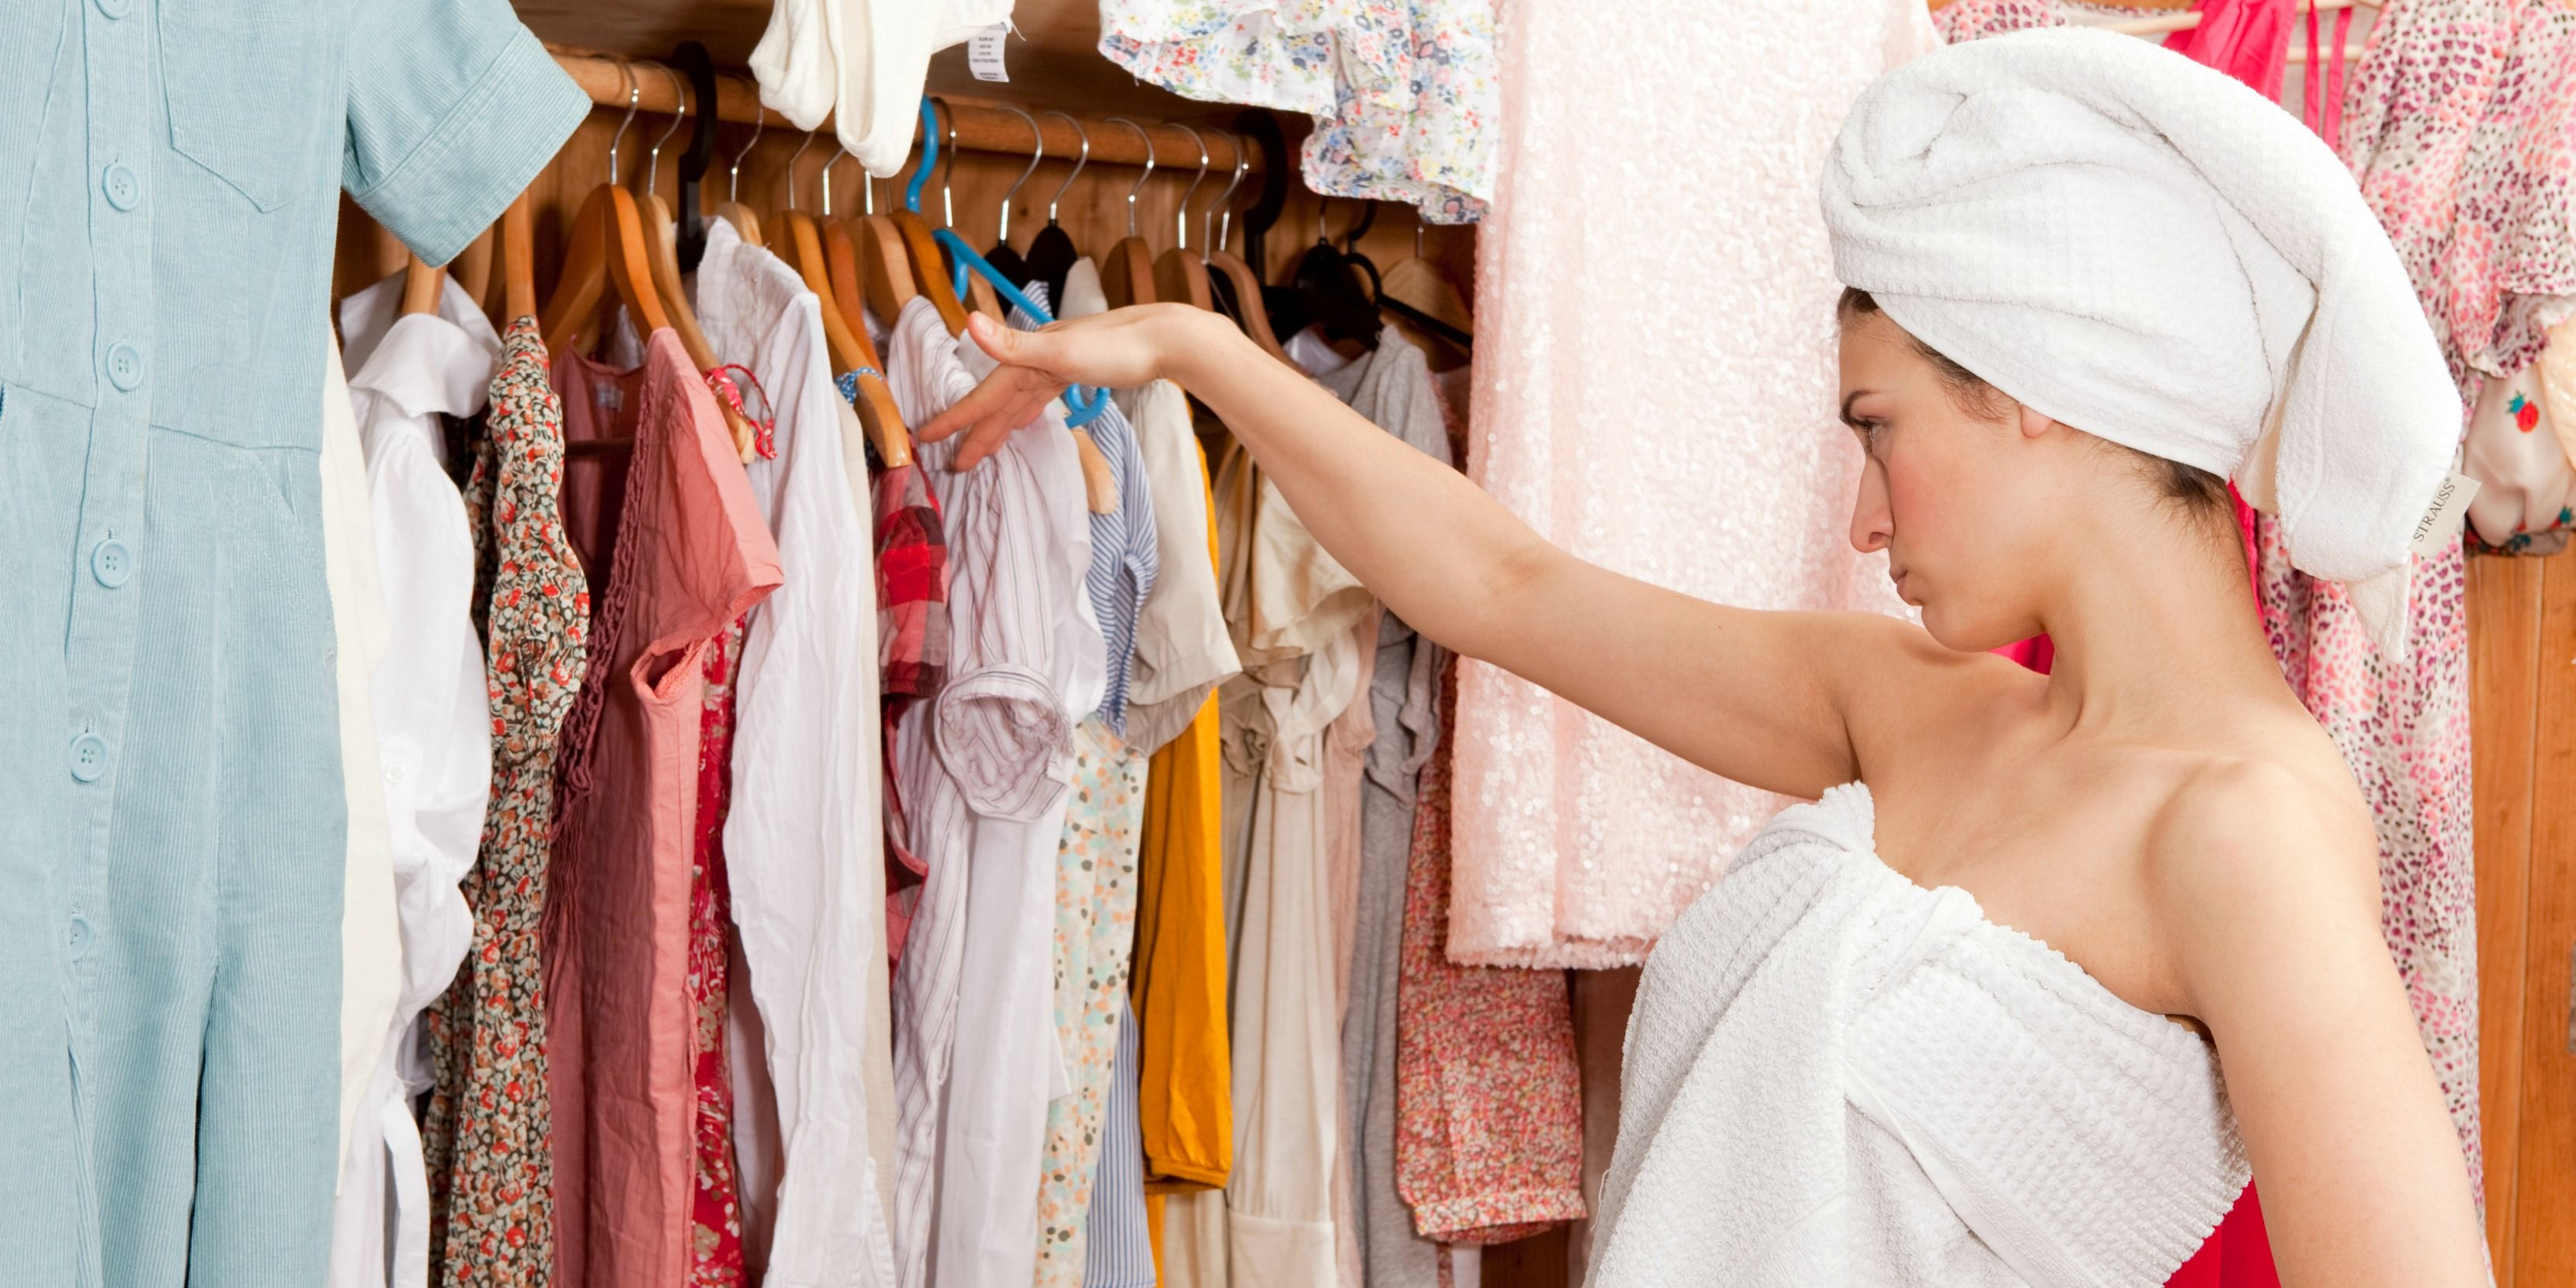 Trouble Deciding What to Wear — Thoughts Every Woman Has While Look at Her  Closet